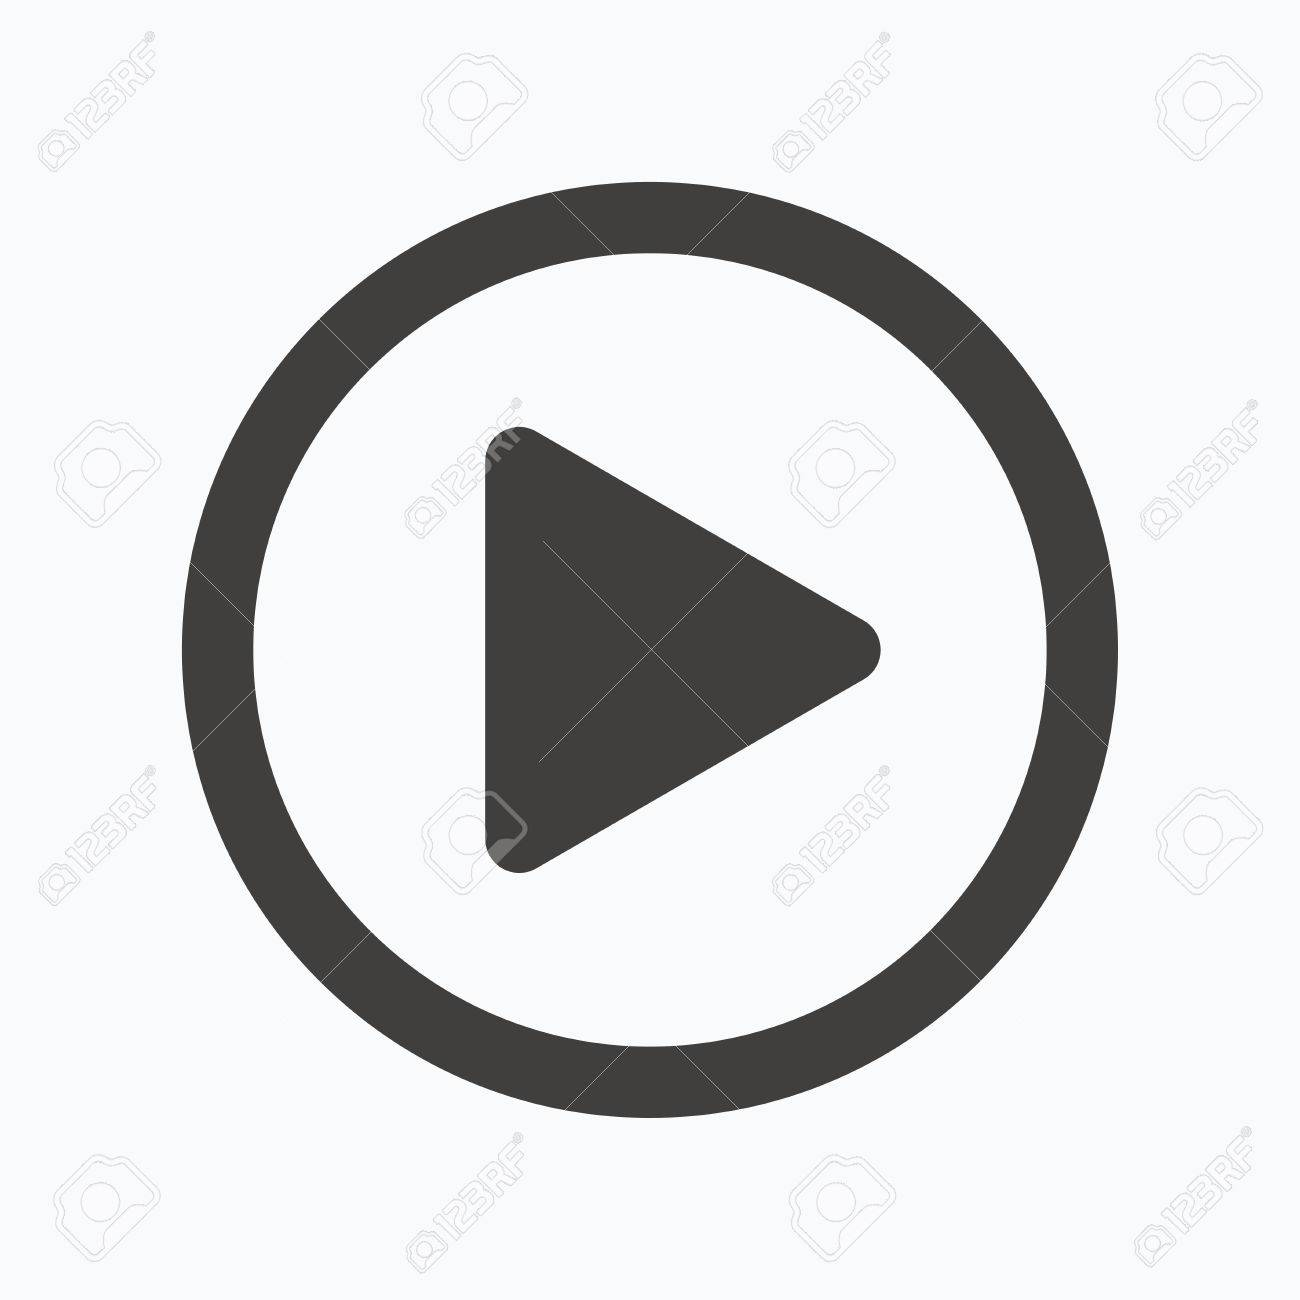 play icon audio or video player symbol gray flat web icon on rh 123rf com video icon vector free video icon vector ai